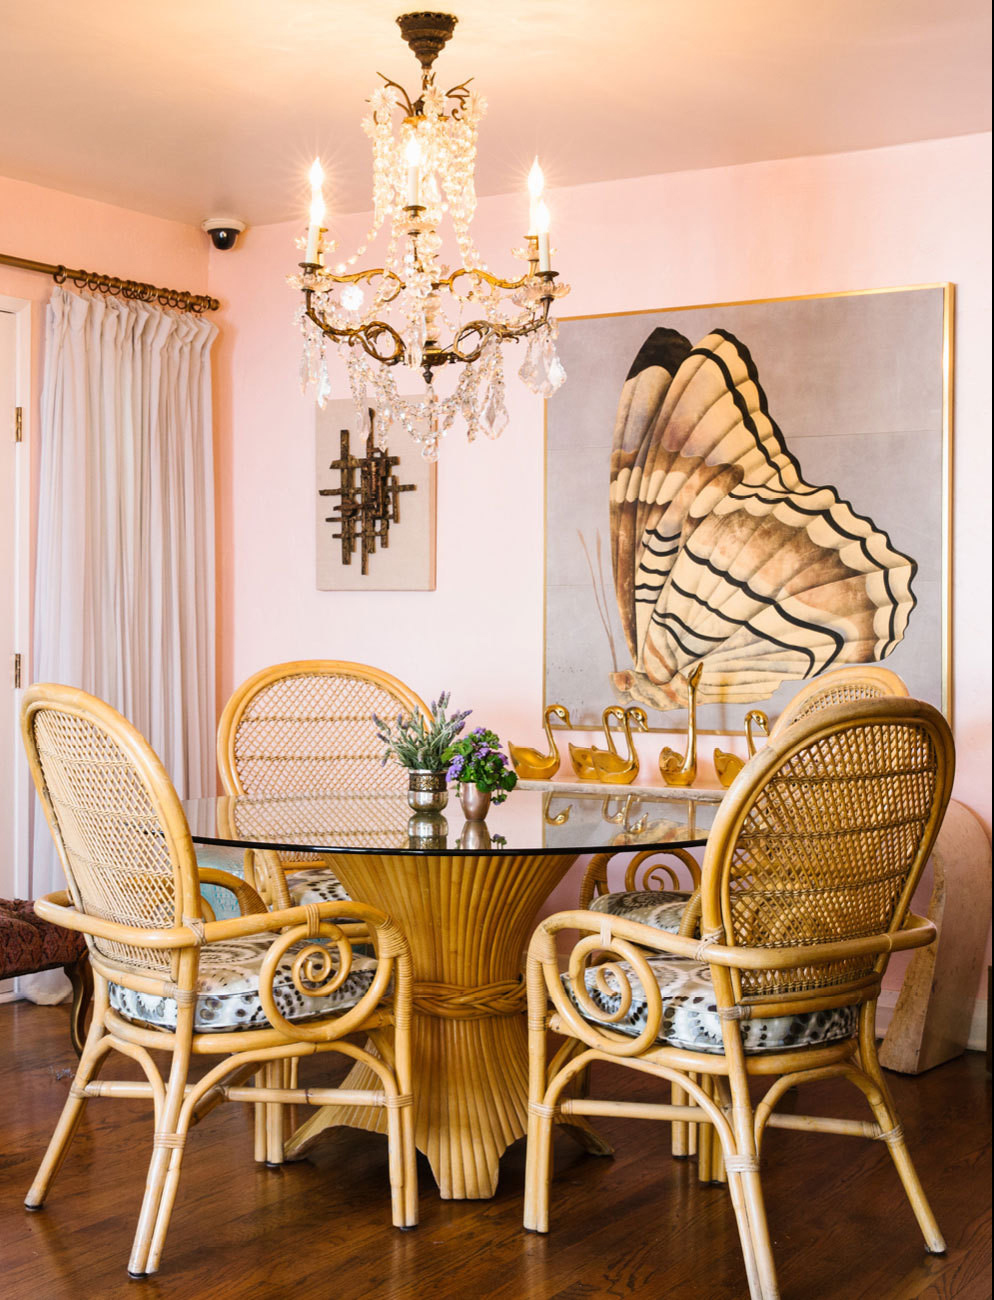 butterfly artwork kitchen wicker table set chair los angeles 50s style home interior pink walls kitchenc handelier eating nook small shop room ideas circular glass table top